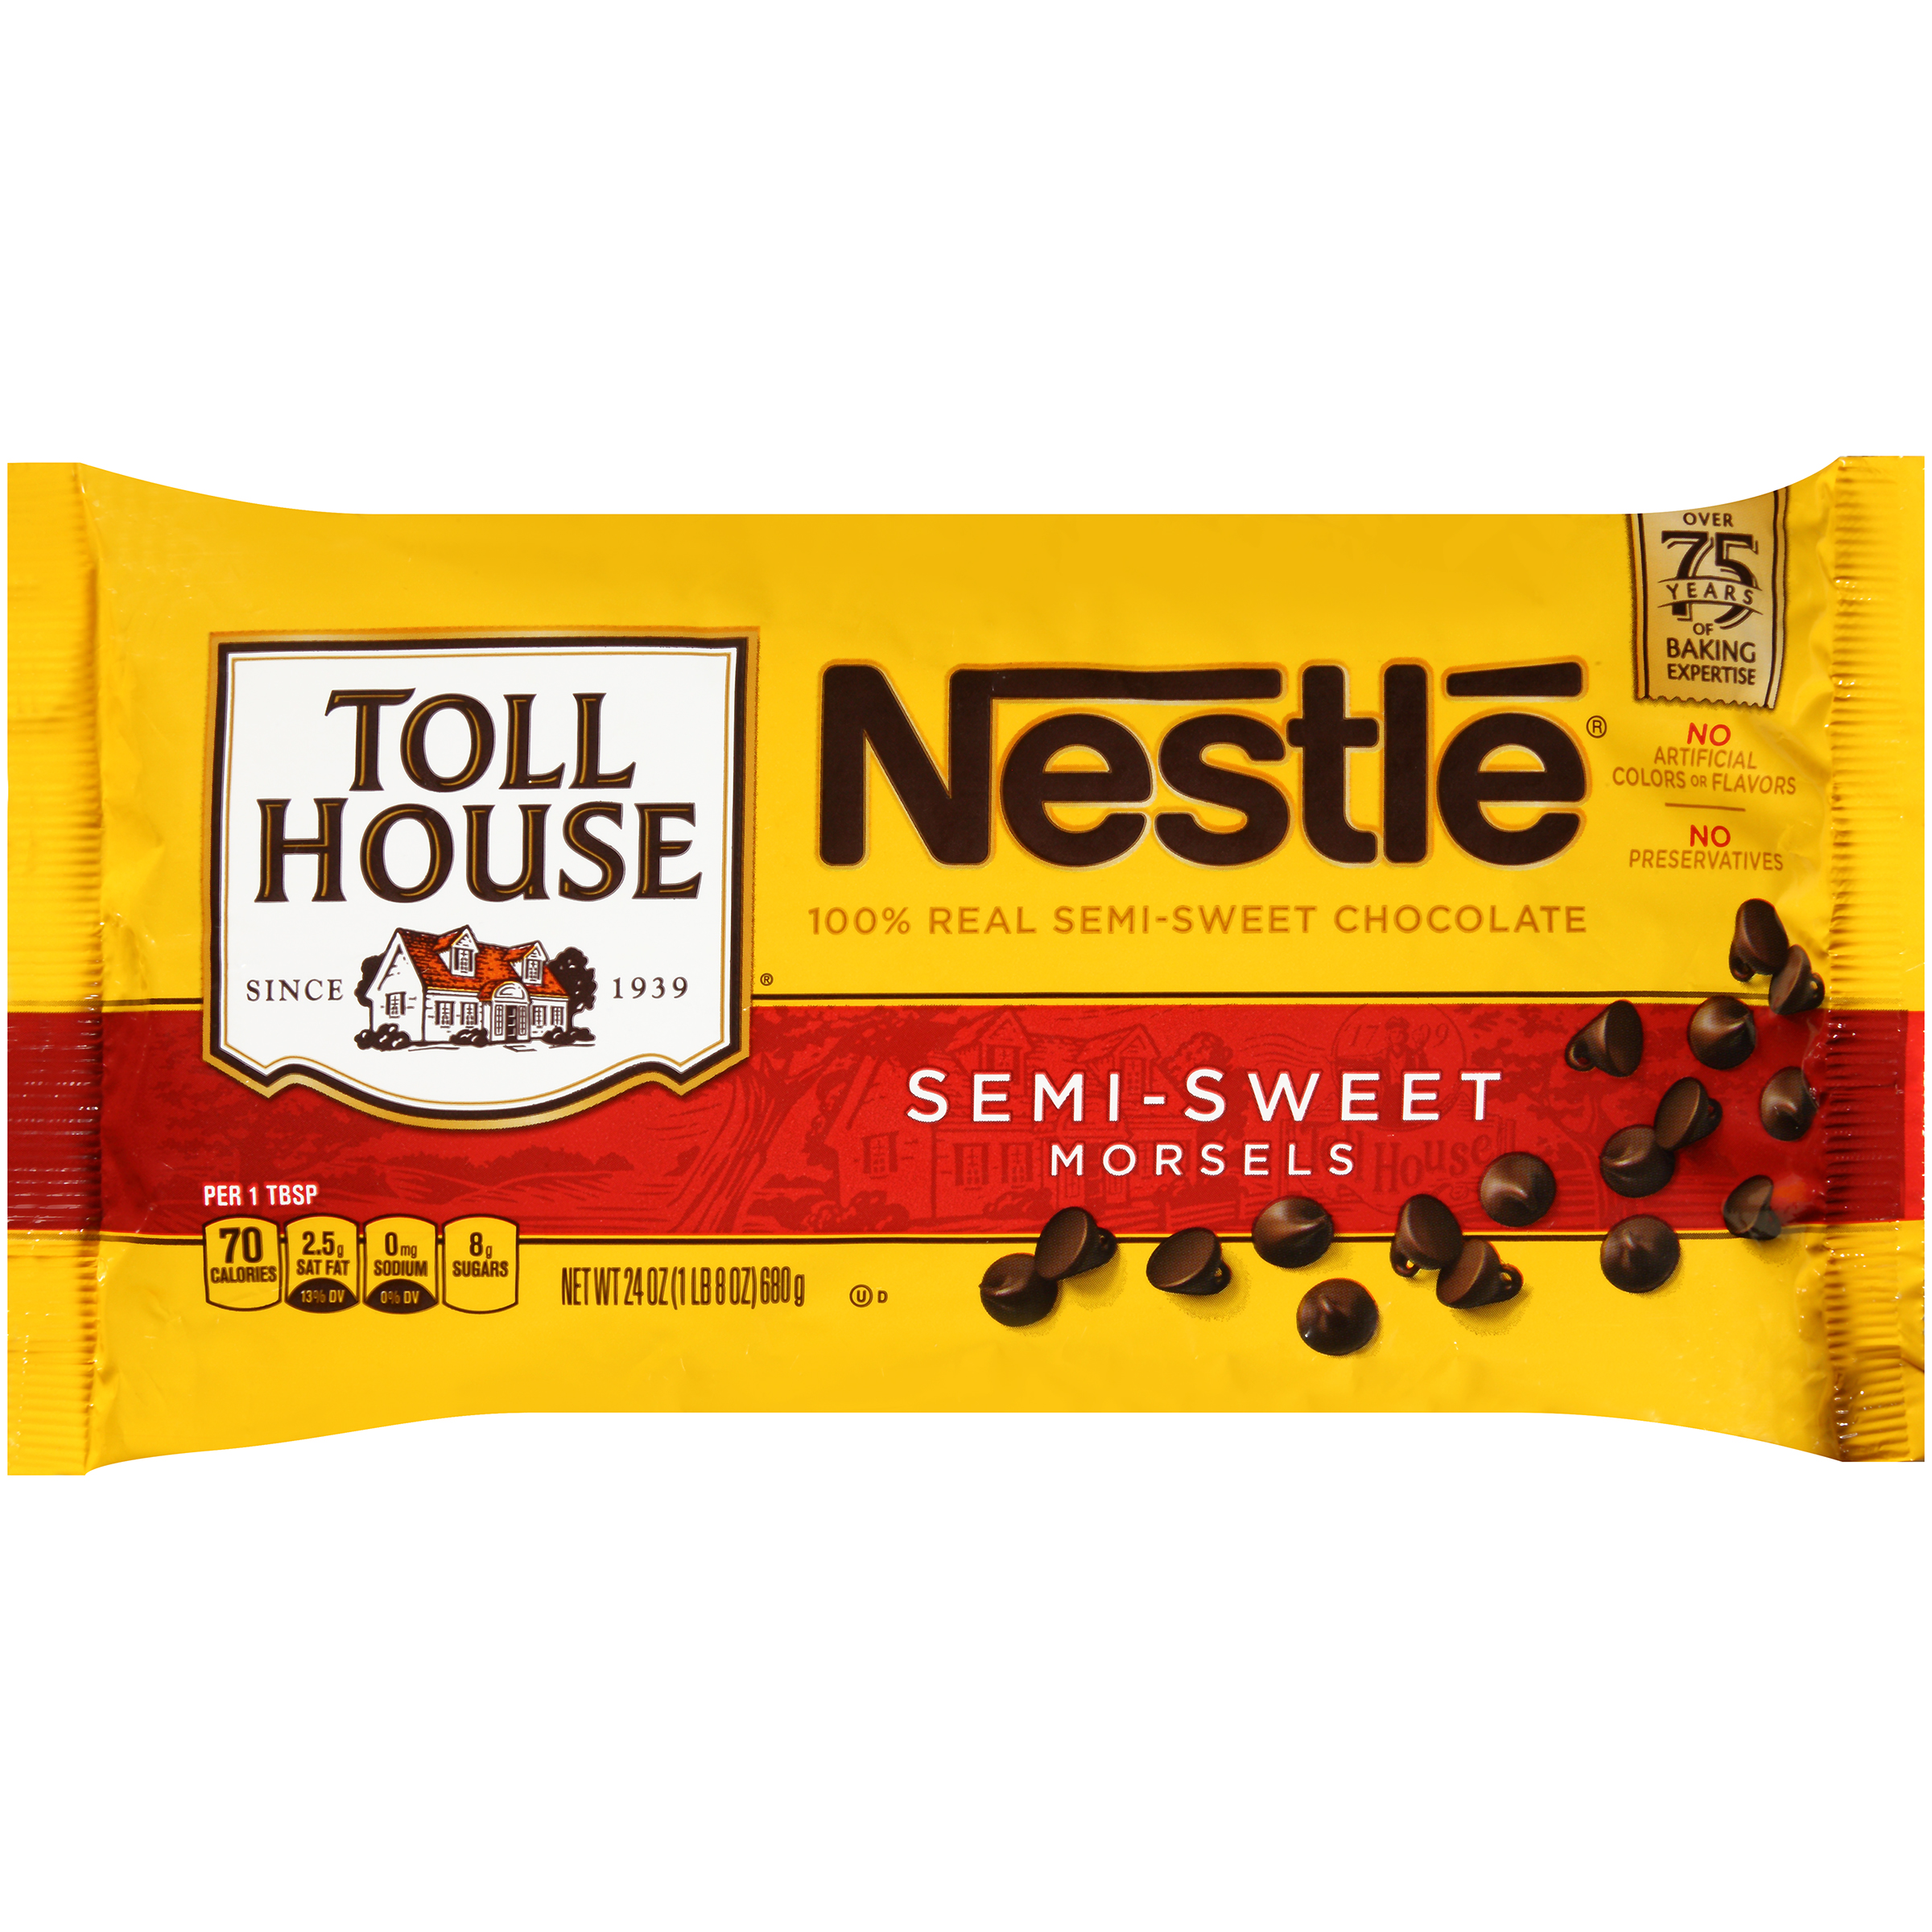 Nestle TOLL HOUSE Semi-Sweet Chocolate Morsels 24 oz. Bag